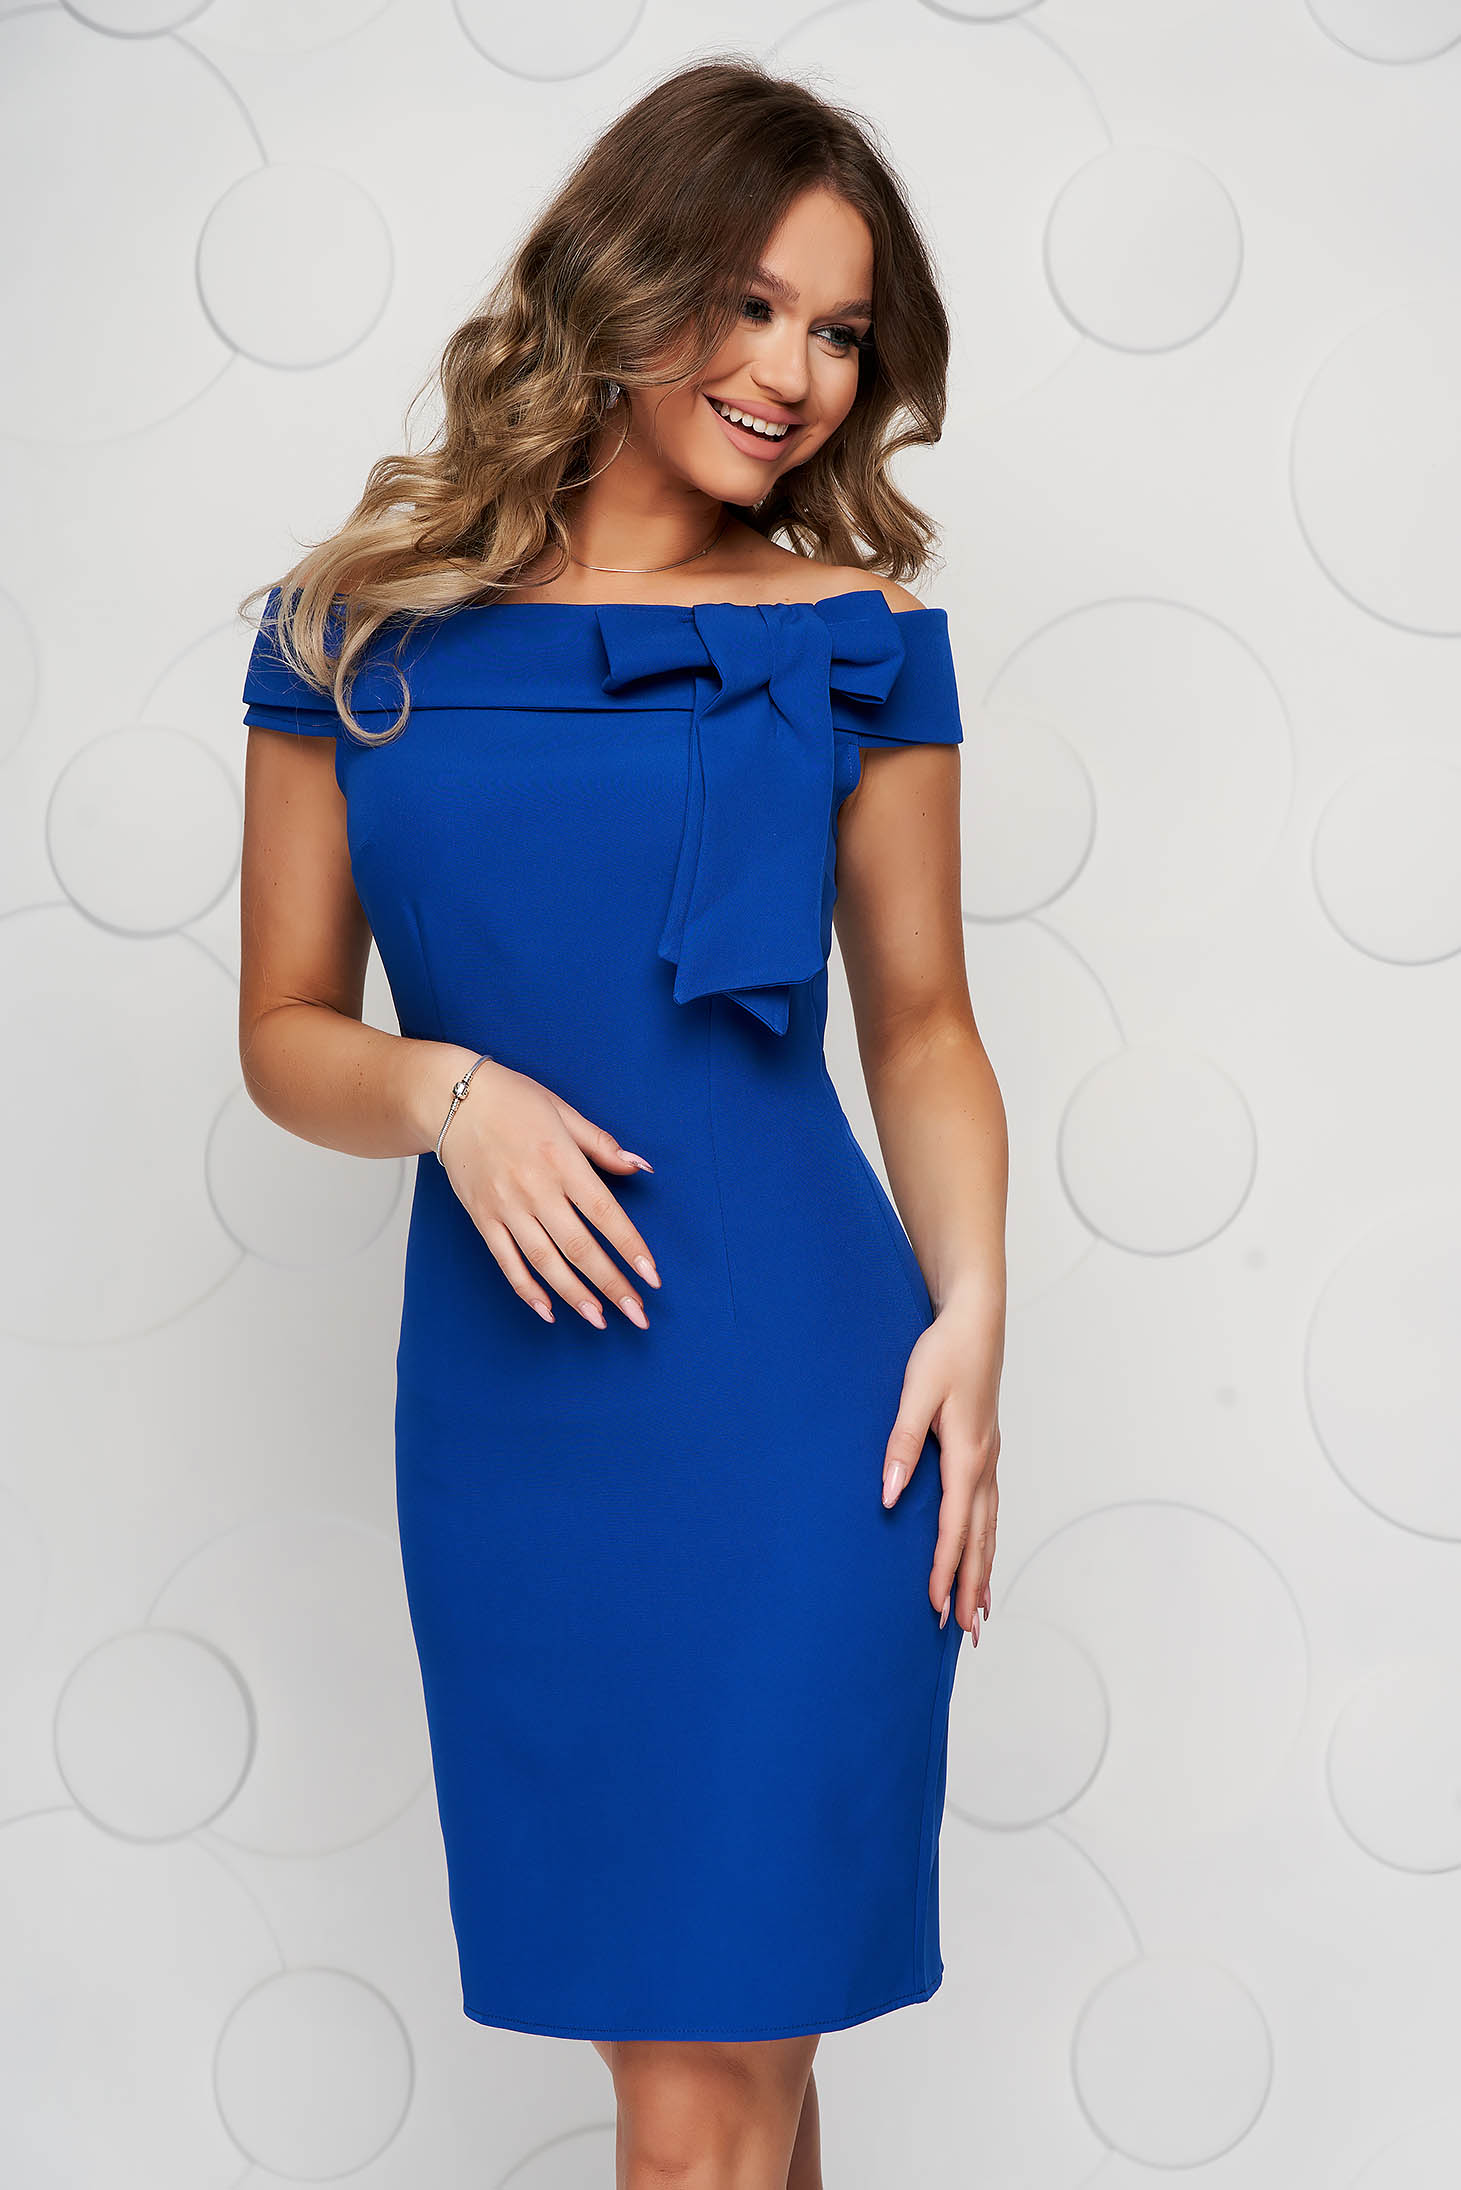 Blue dress occasional short cut bow accessory on the shoulders